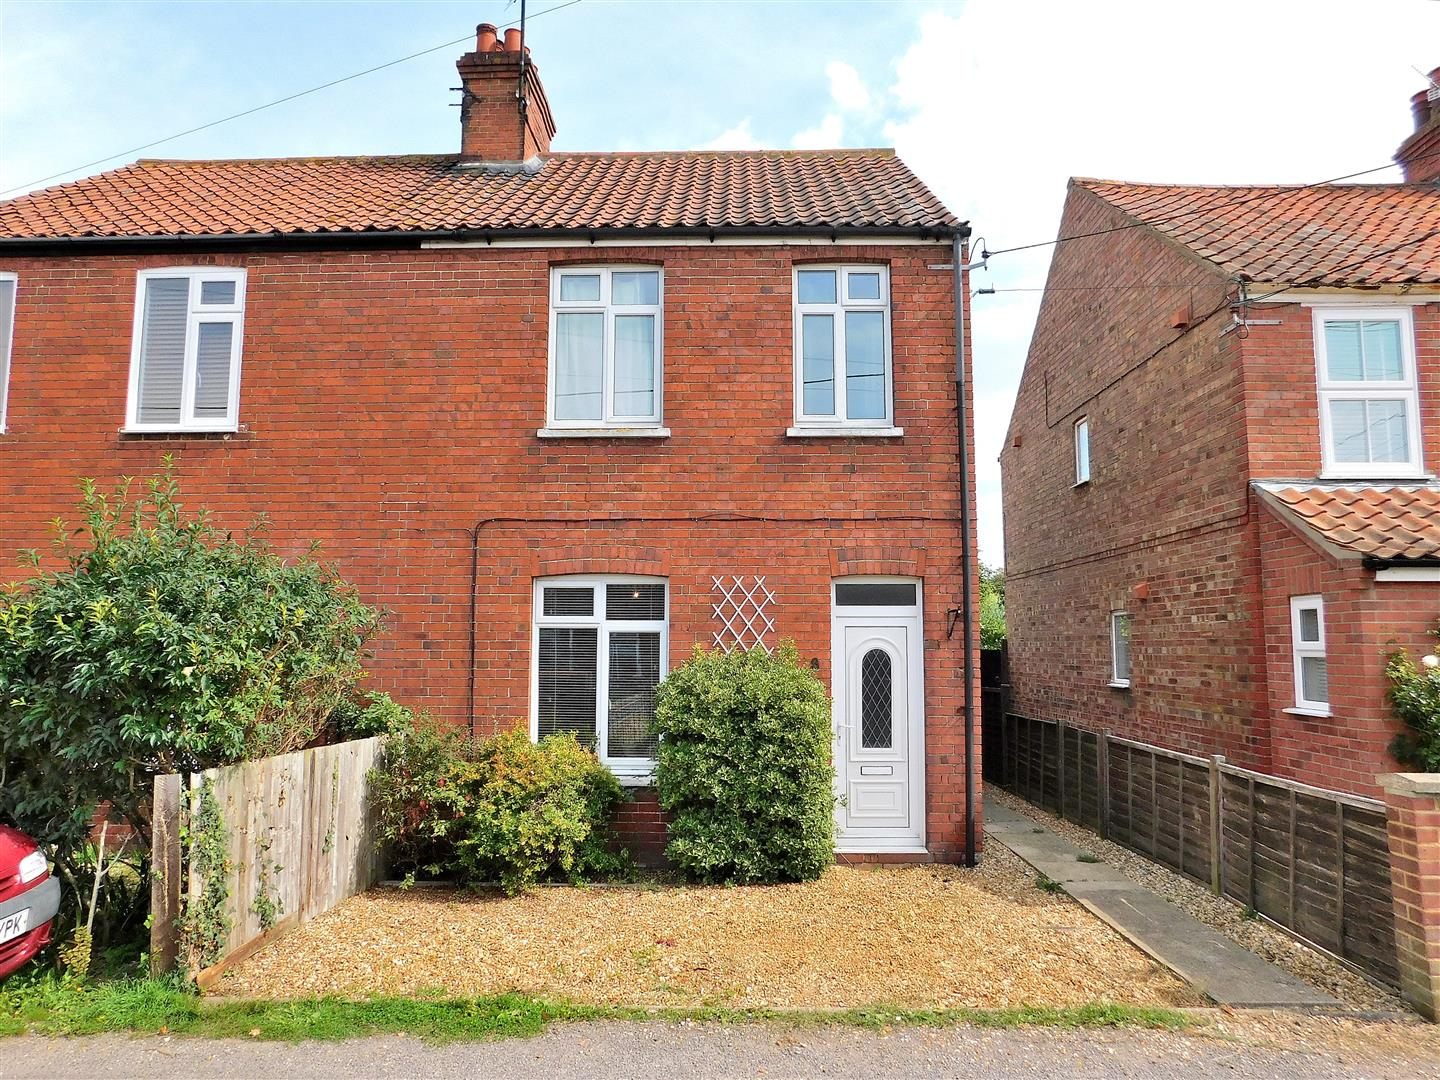 3 bed semi-detached house for sale in King's Lynn, PE31 7DN - Property Image 1